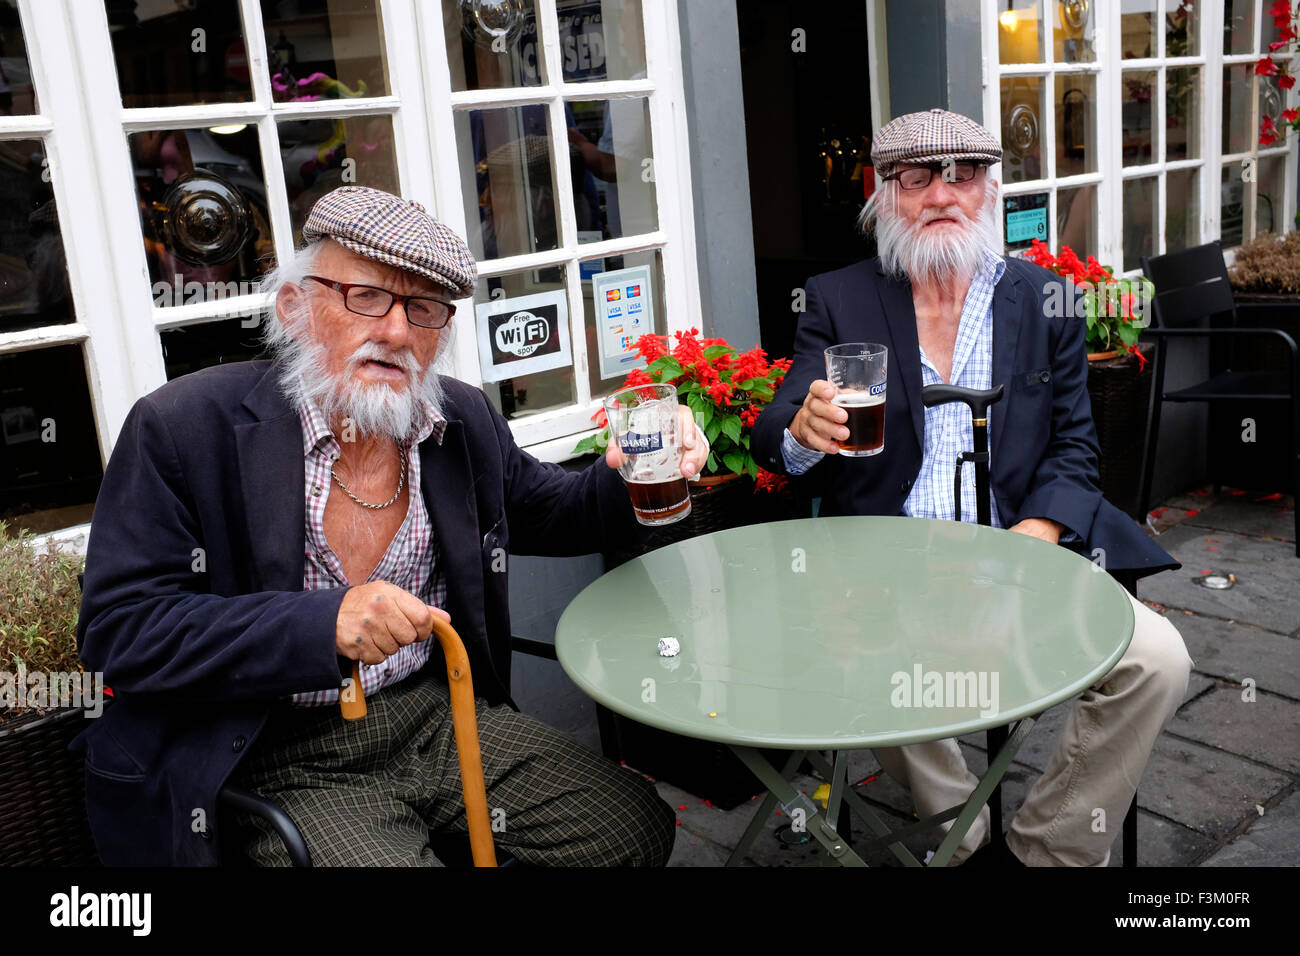 to elderly gentlemen drinking out side The Vectis Pub Yacht Racing, Shore side entertainments, Bands, Yacht Club - Stock Image